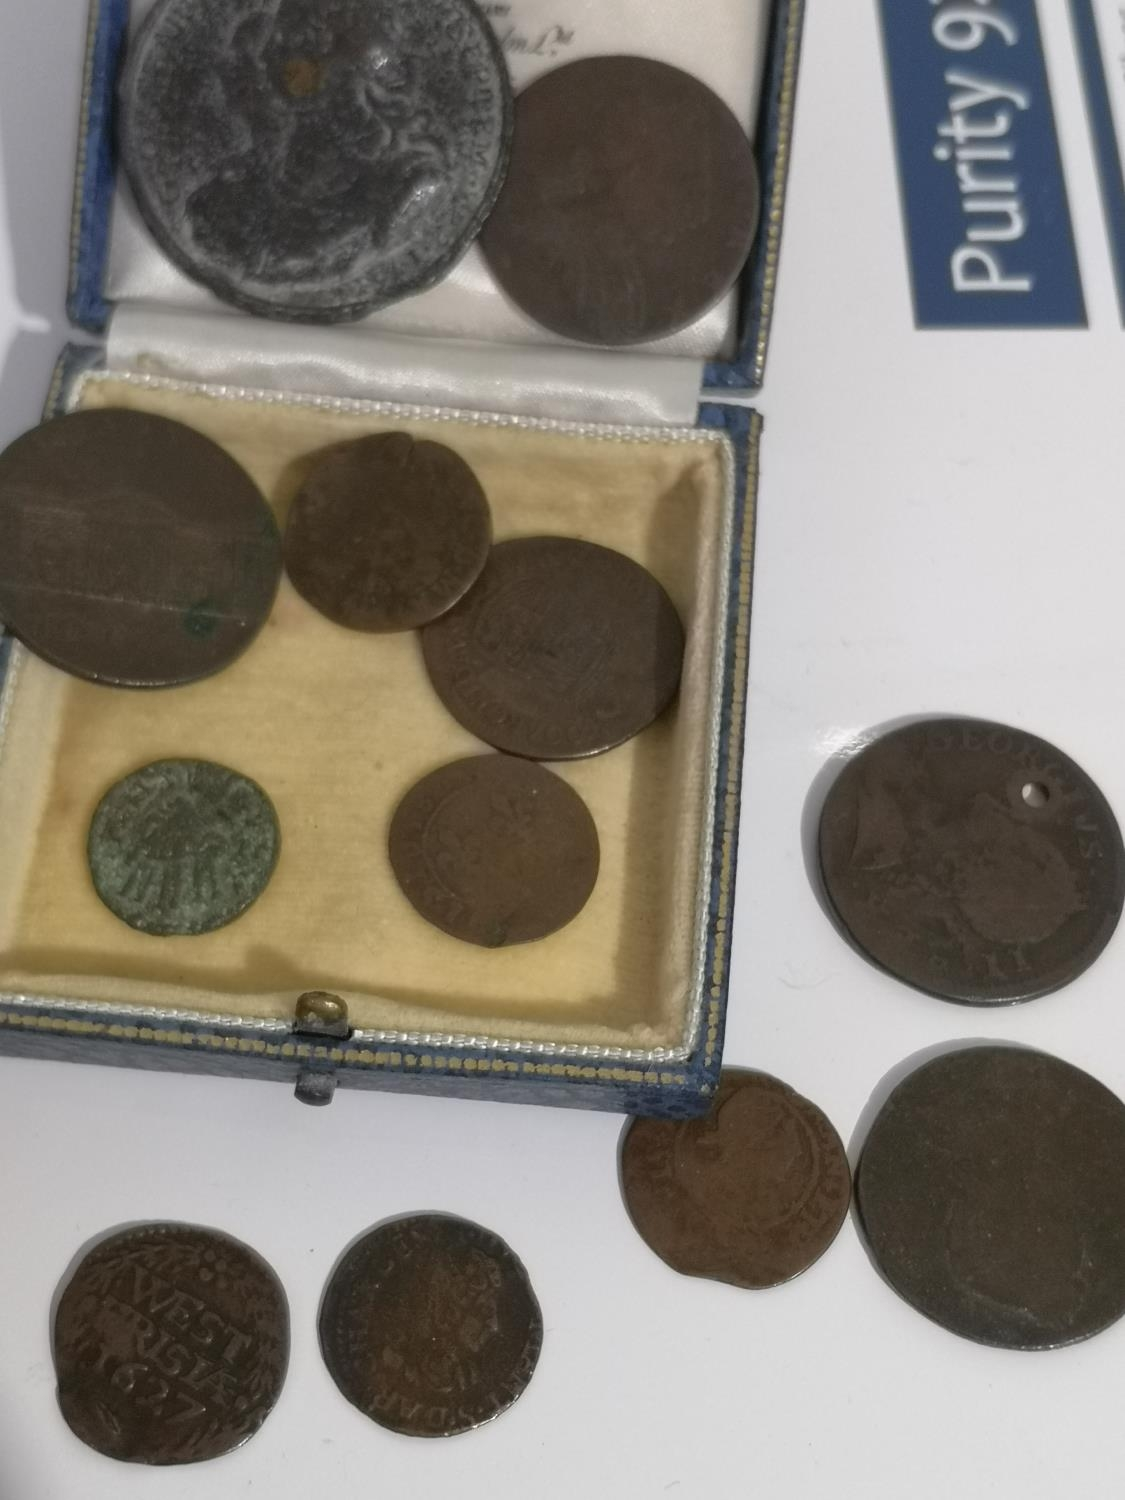 A COLLECTION OF OLD AND ANCIENT COINS TO INCLUDE WEST FRISIA 1627 COIN, 1767 LARGE COIN, NEWGATE